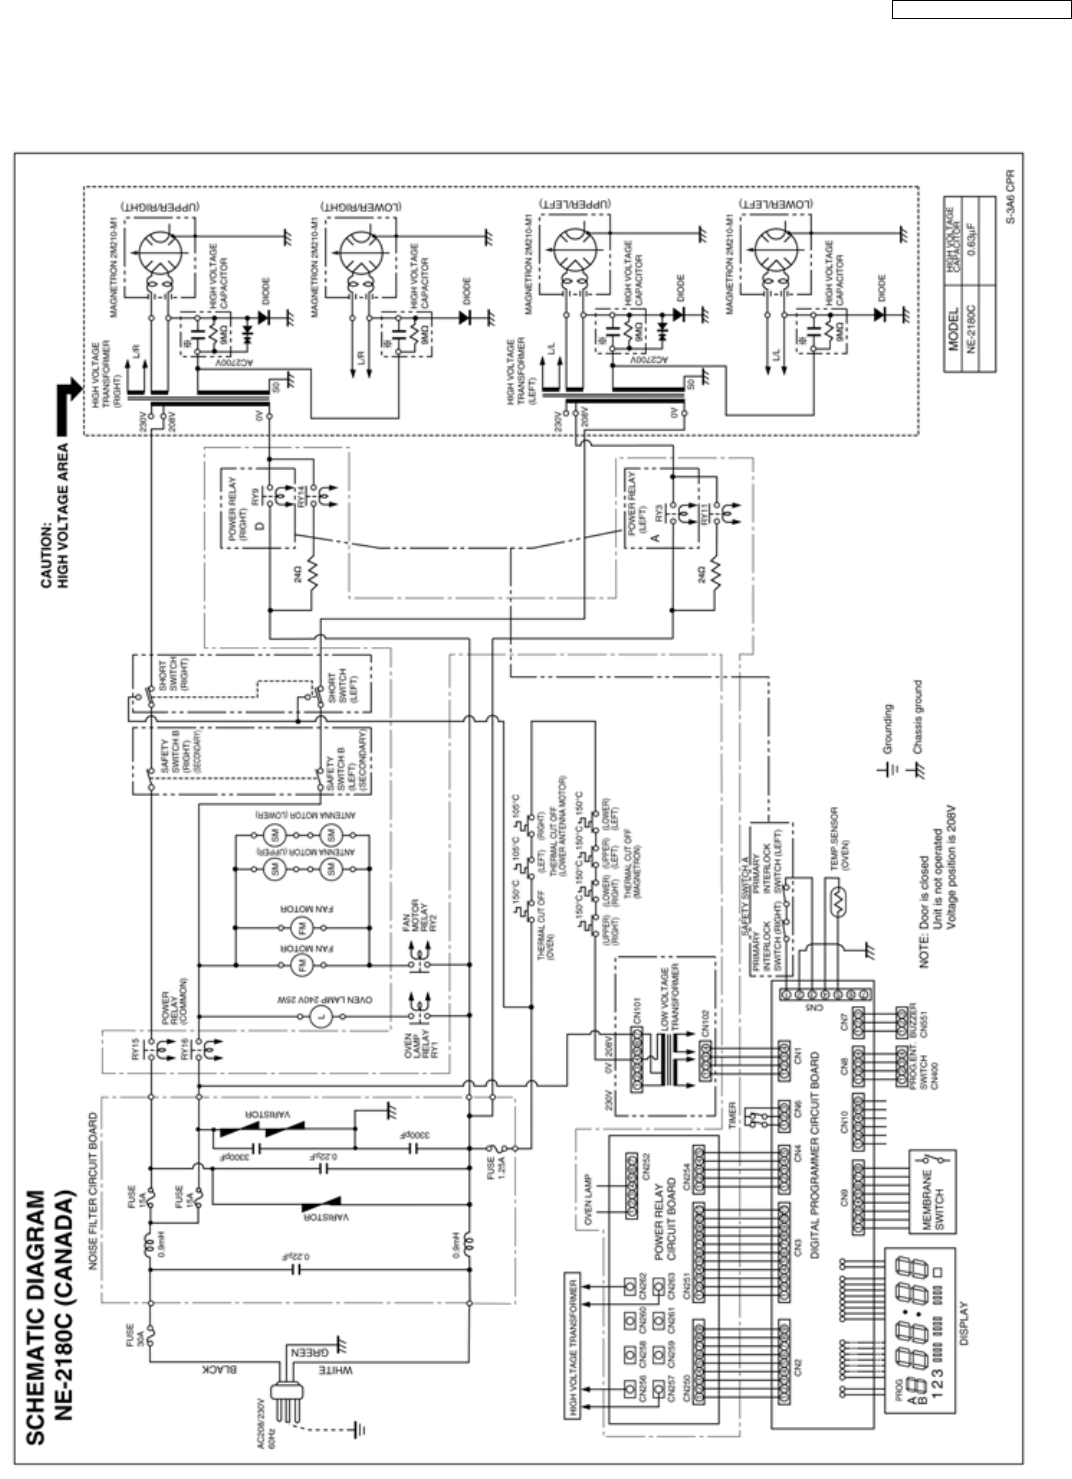 rca oven schematic free wiring diagram images